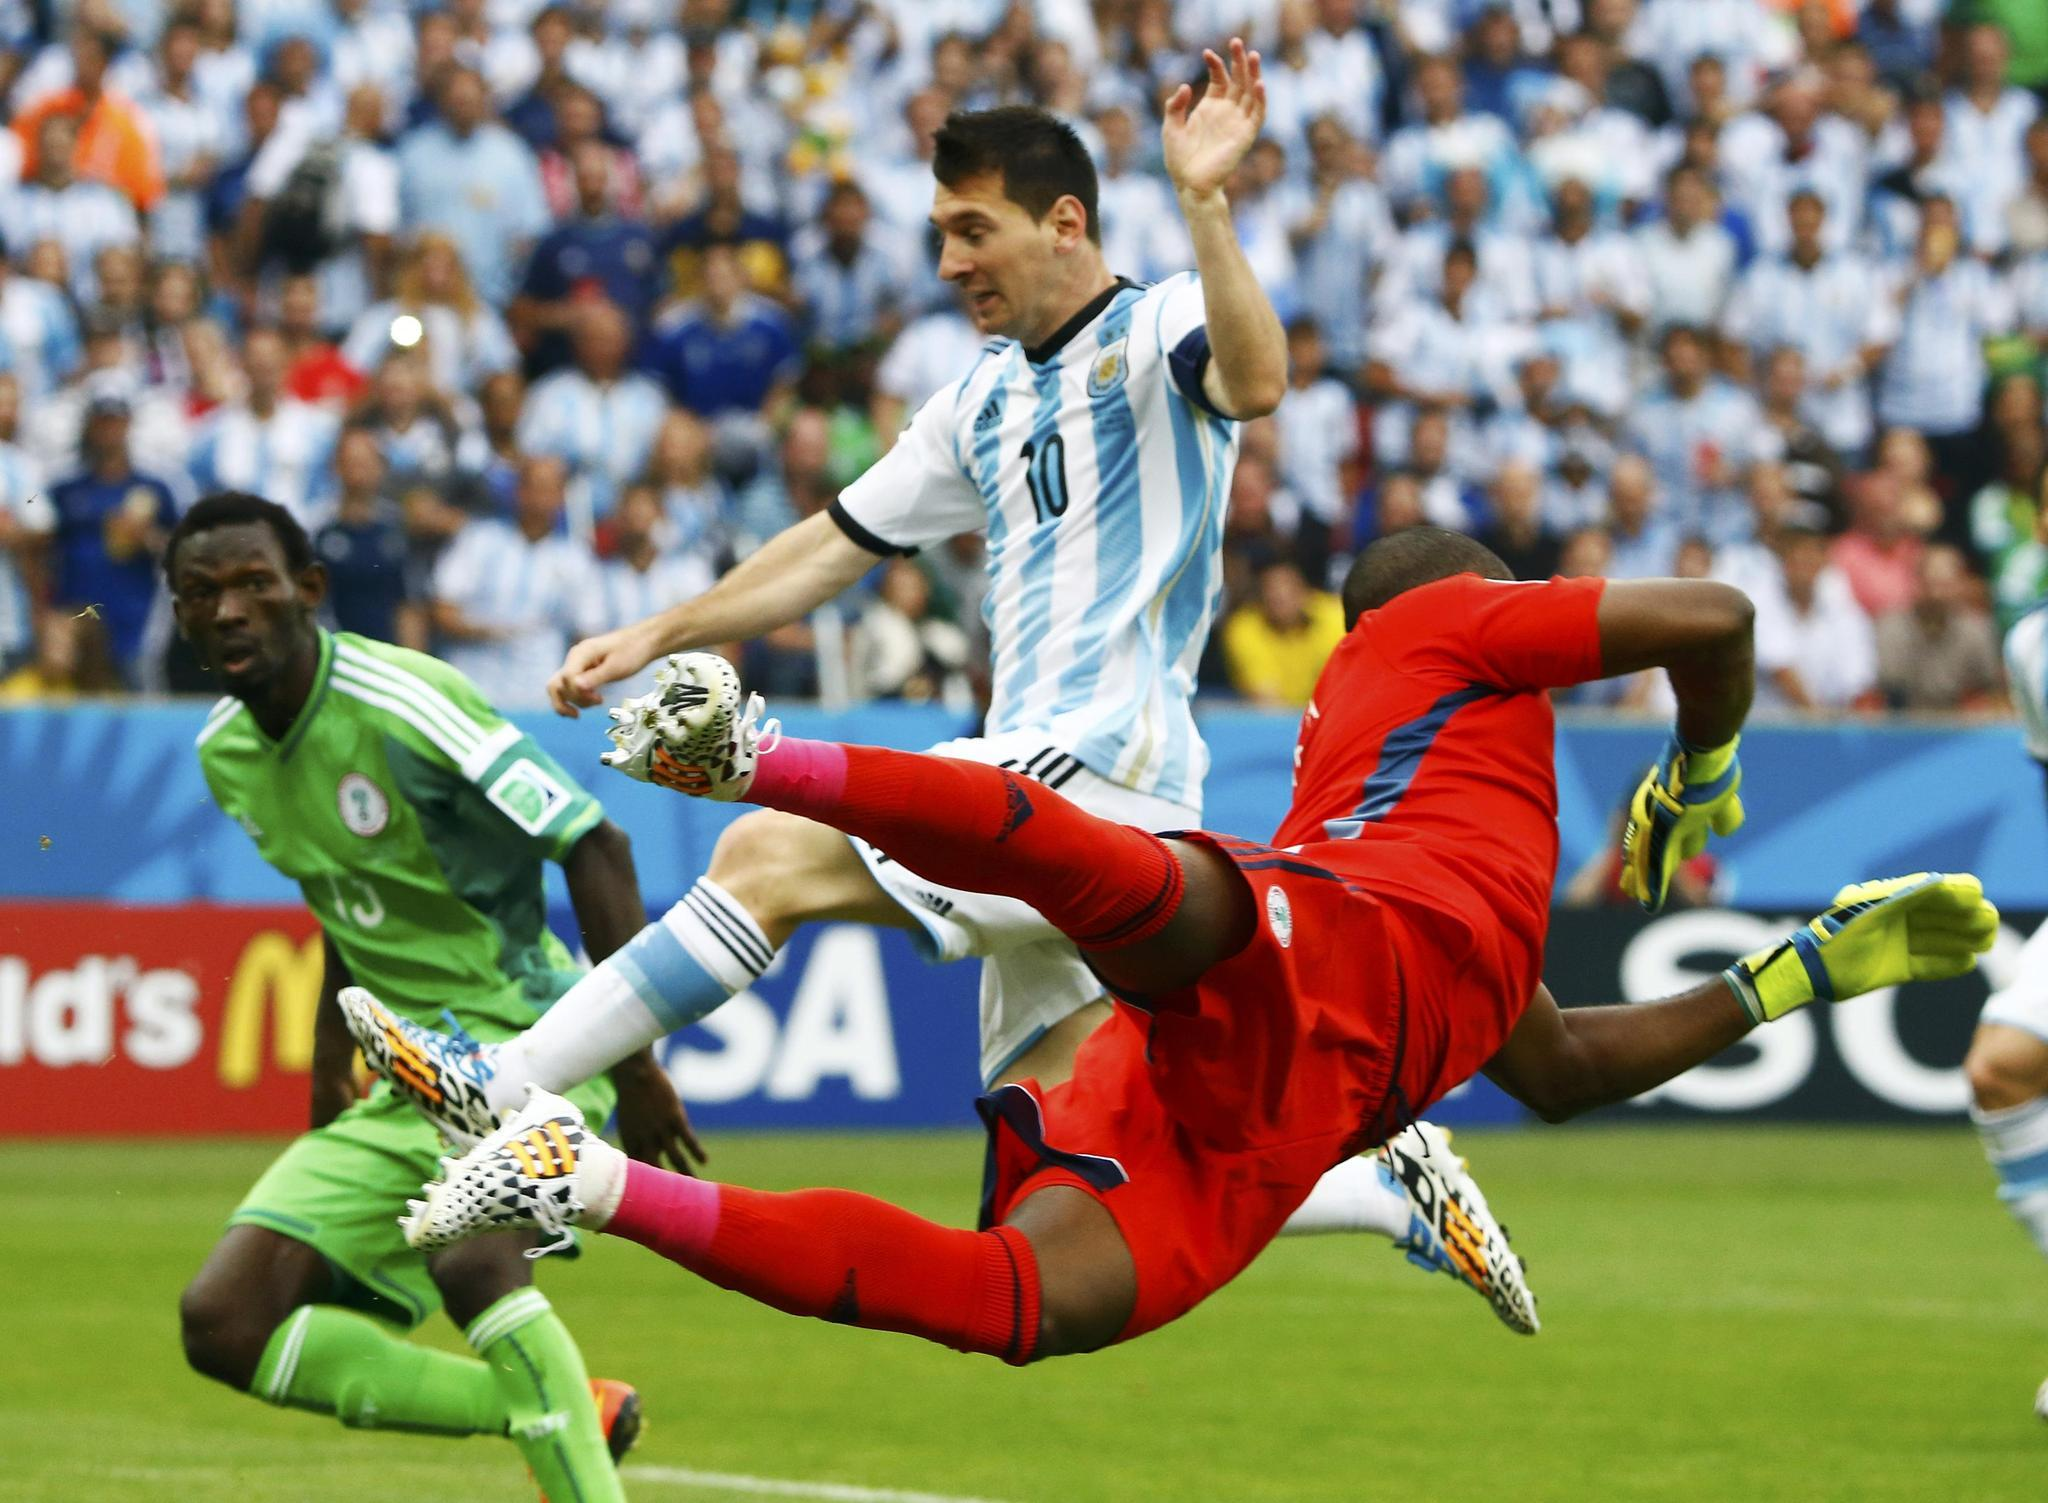 Argentina's Lionel Messi misses a chance to score against Nigeria during their 2014 World Cup Group F soccer match.